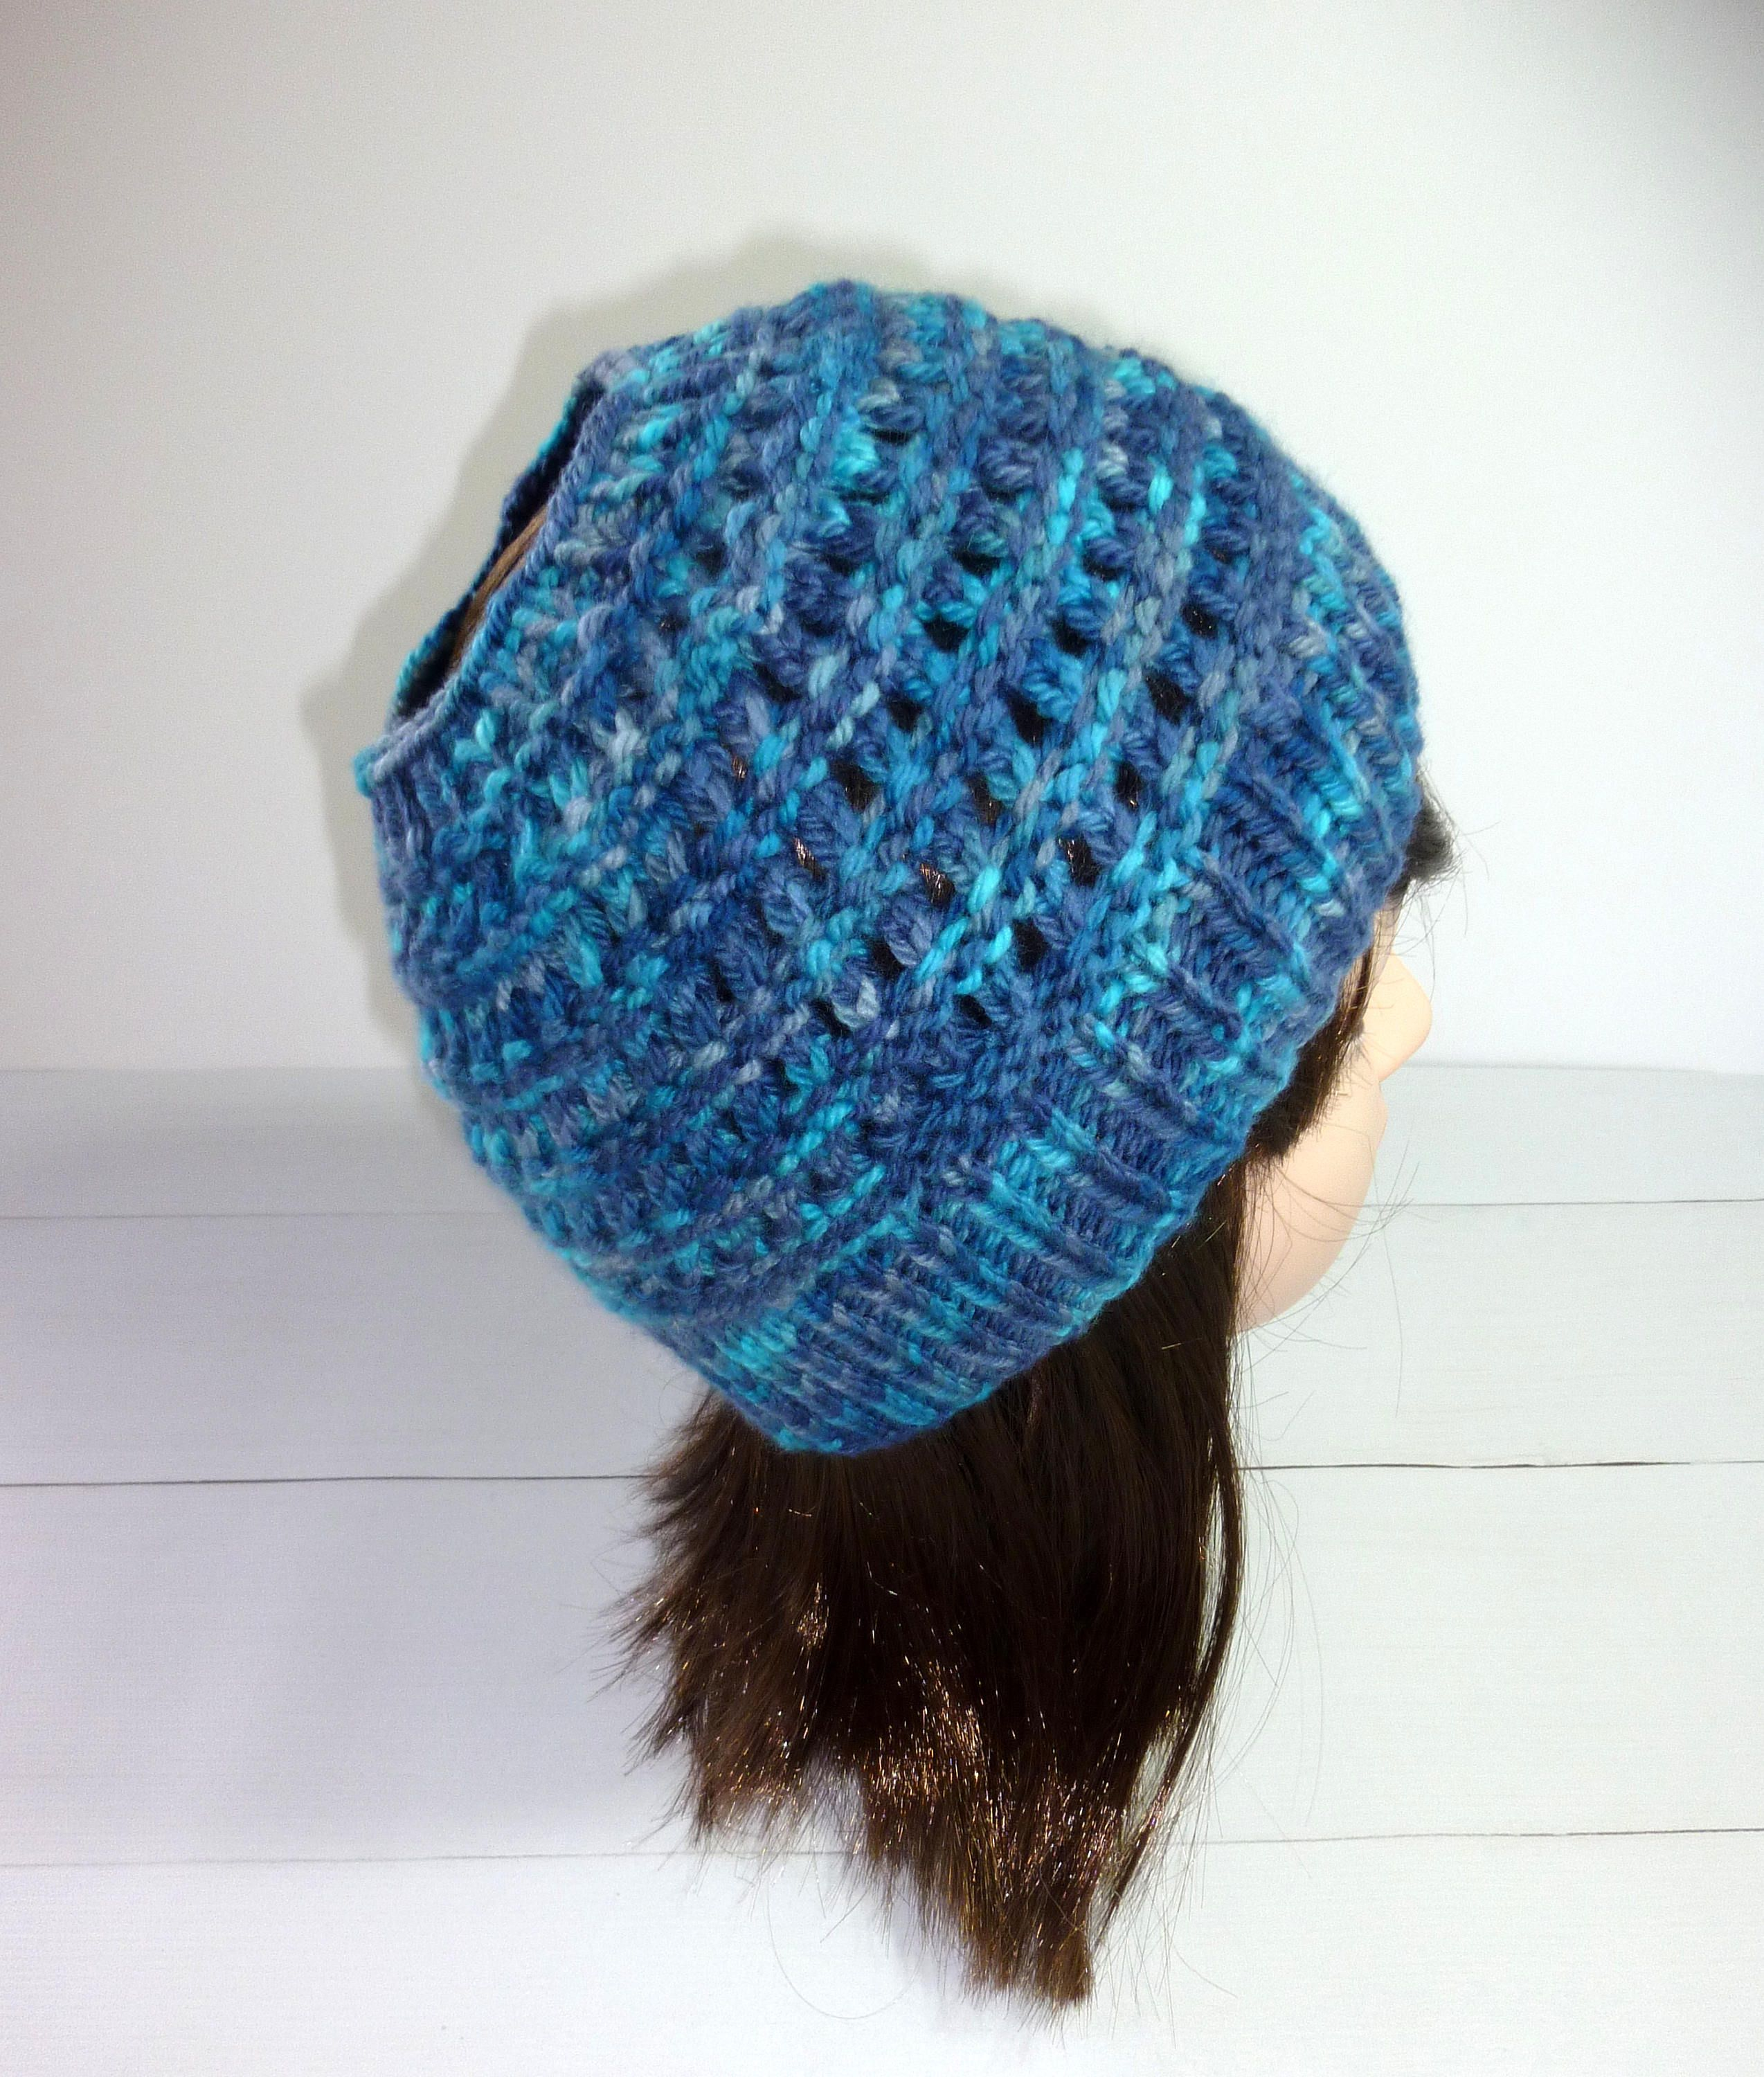 36405994d15e5 Pony tail hat. Hand knit hat. Knitted Wool hat. Pure wool hat. Messy bun  beanie. ponytail beanie. Ladies knit hat. Blue hat. by Thingswelike2knit on  Etsy